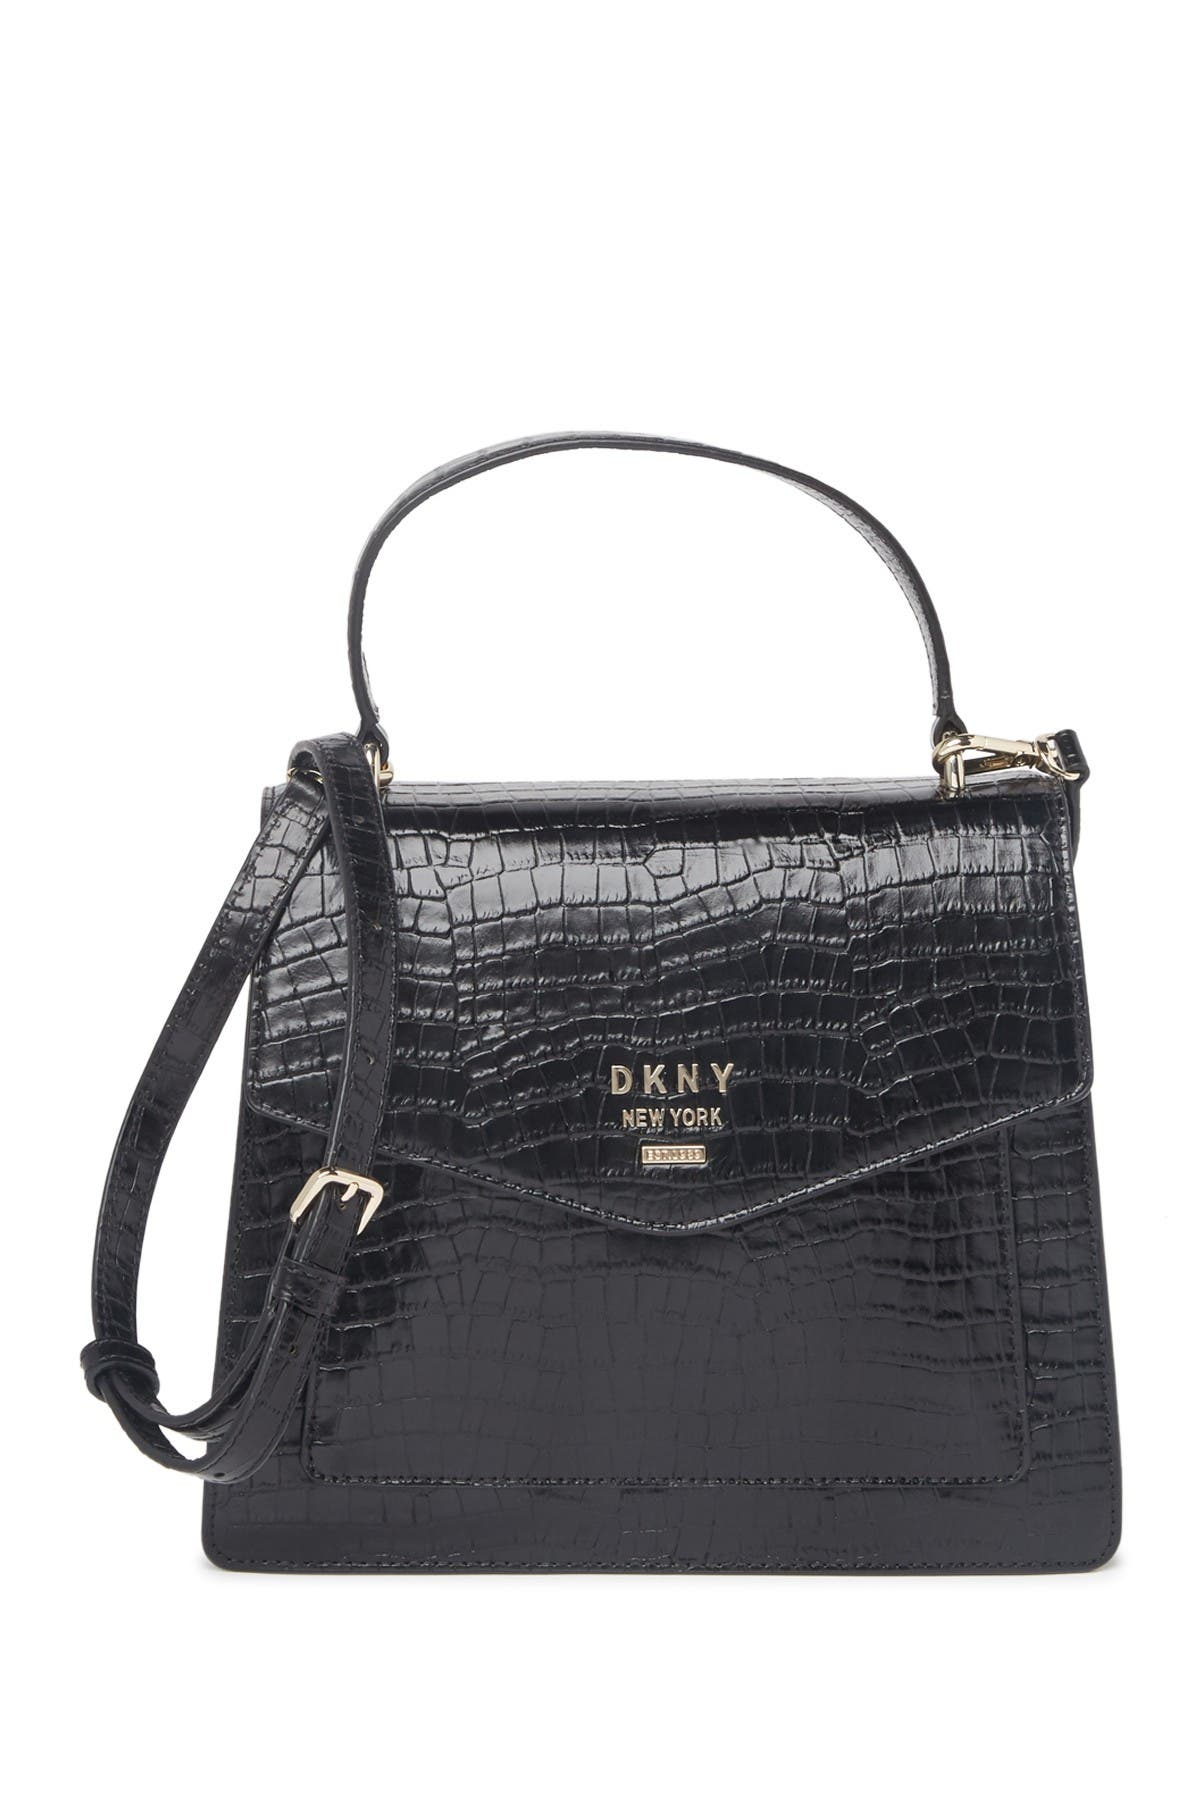 Image of DKNY Whitney Croc Embossed Leather Satchel Bag